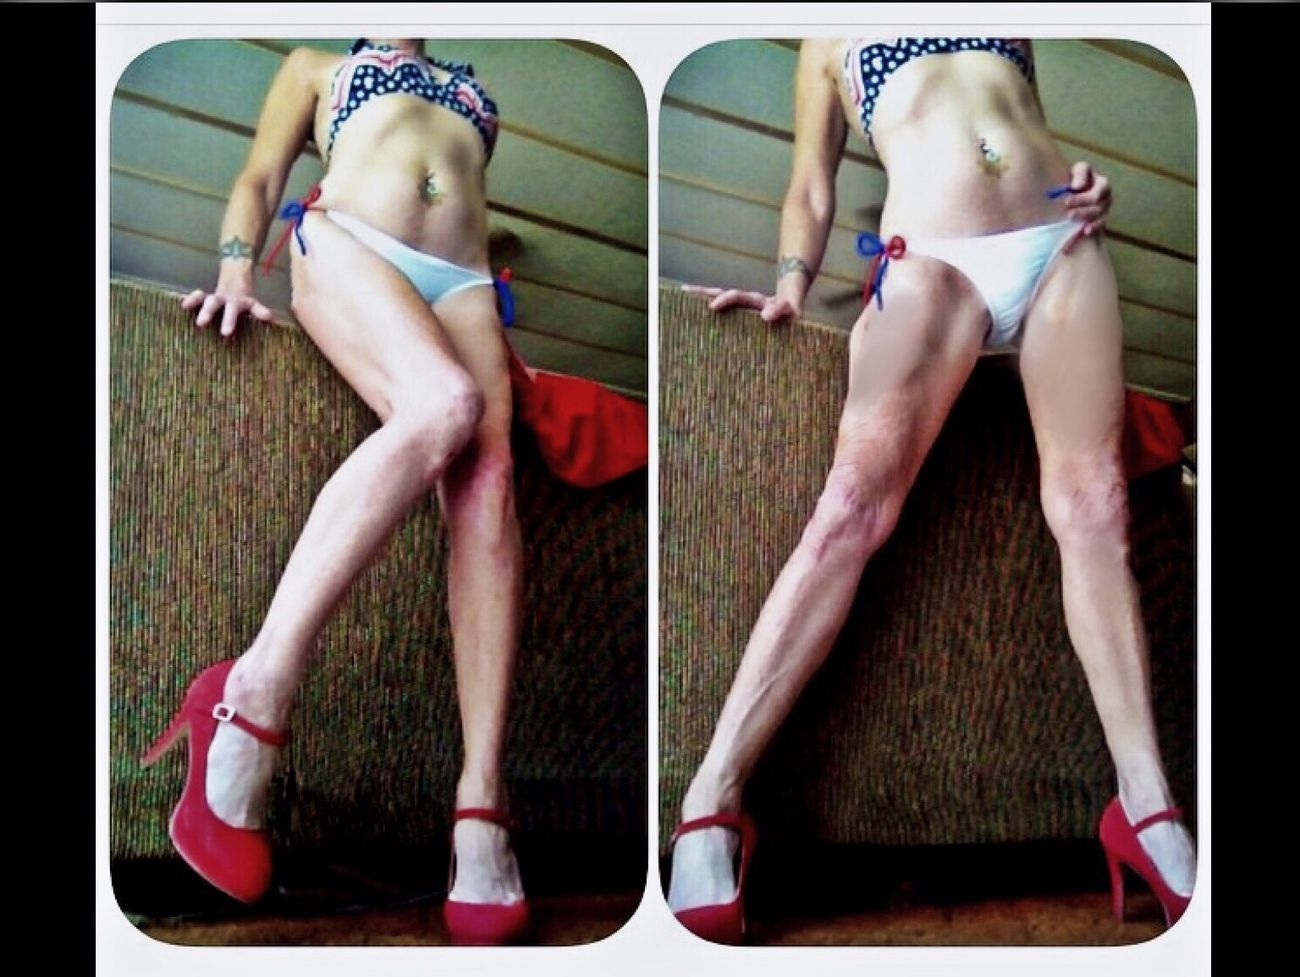 Legsfordays Teamlonglegs Swimsuit Fashion Legs Legs Legs Bikinifitness Swimsuit Model Bikinimodel Legs4days High Heels ❤ Red Hair Redhighheels SexyAsFuck Bikiniporn Bikinibabe Leg Photography Beautiful